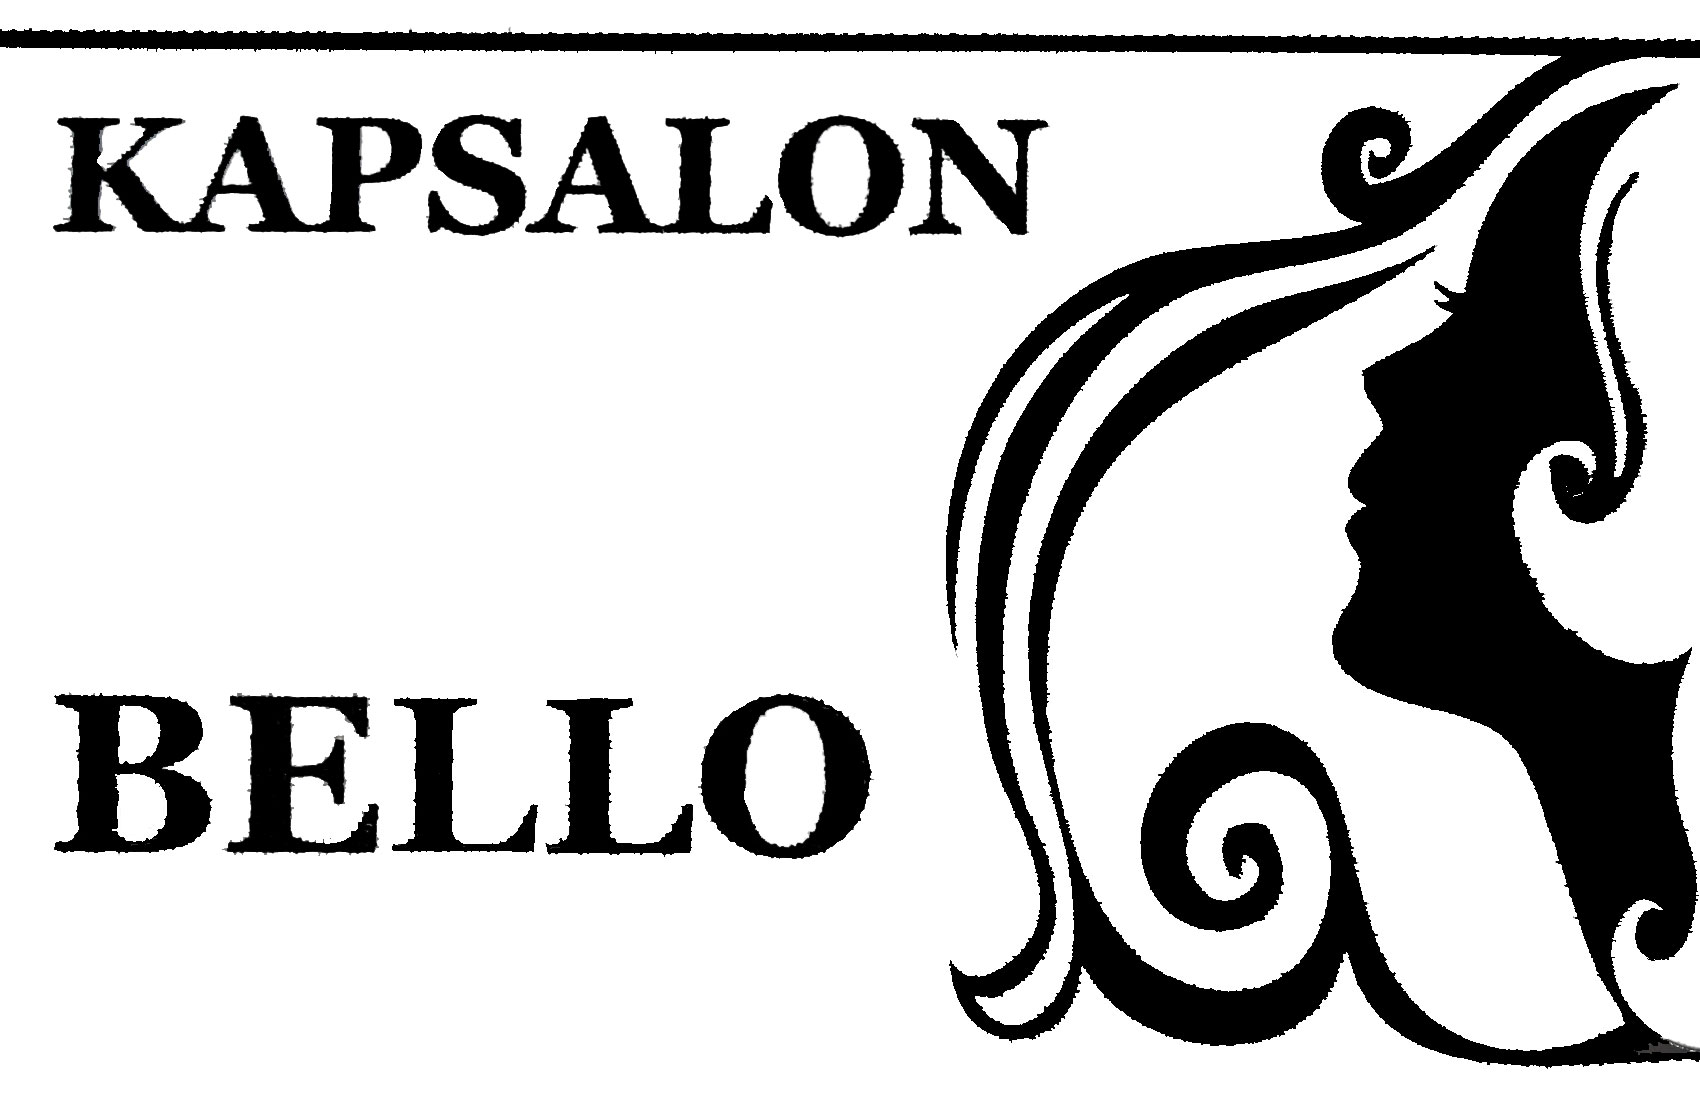 Bello Kapsalon